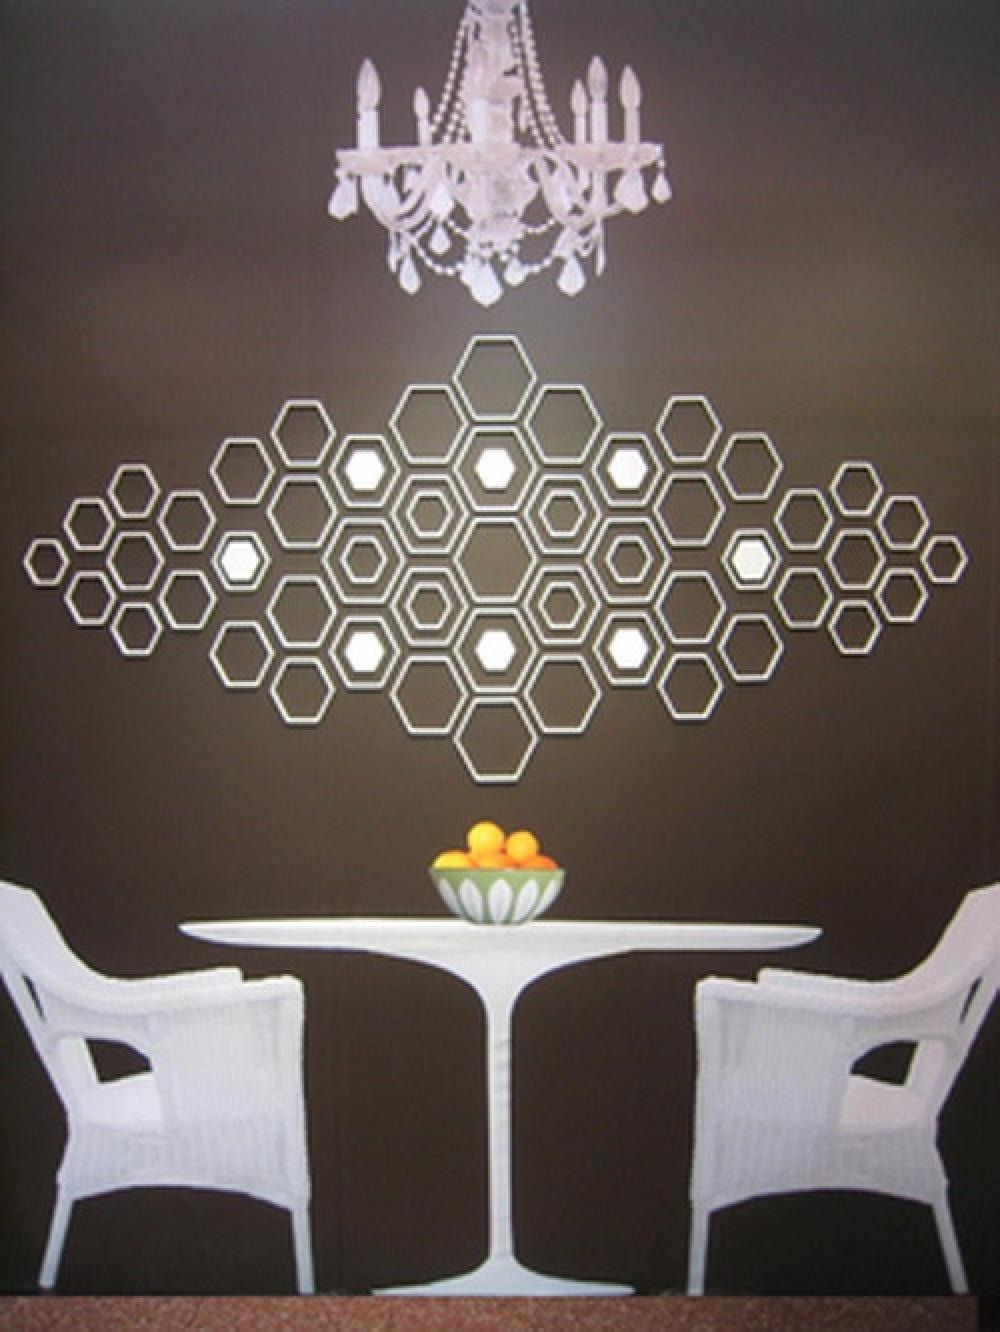 Use This Wall Decor Ideas for Elegant Dining Area with Wicker Chairs and Round Table under Crystal Chandelier